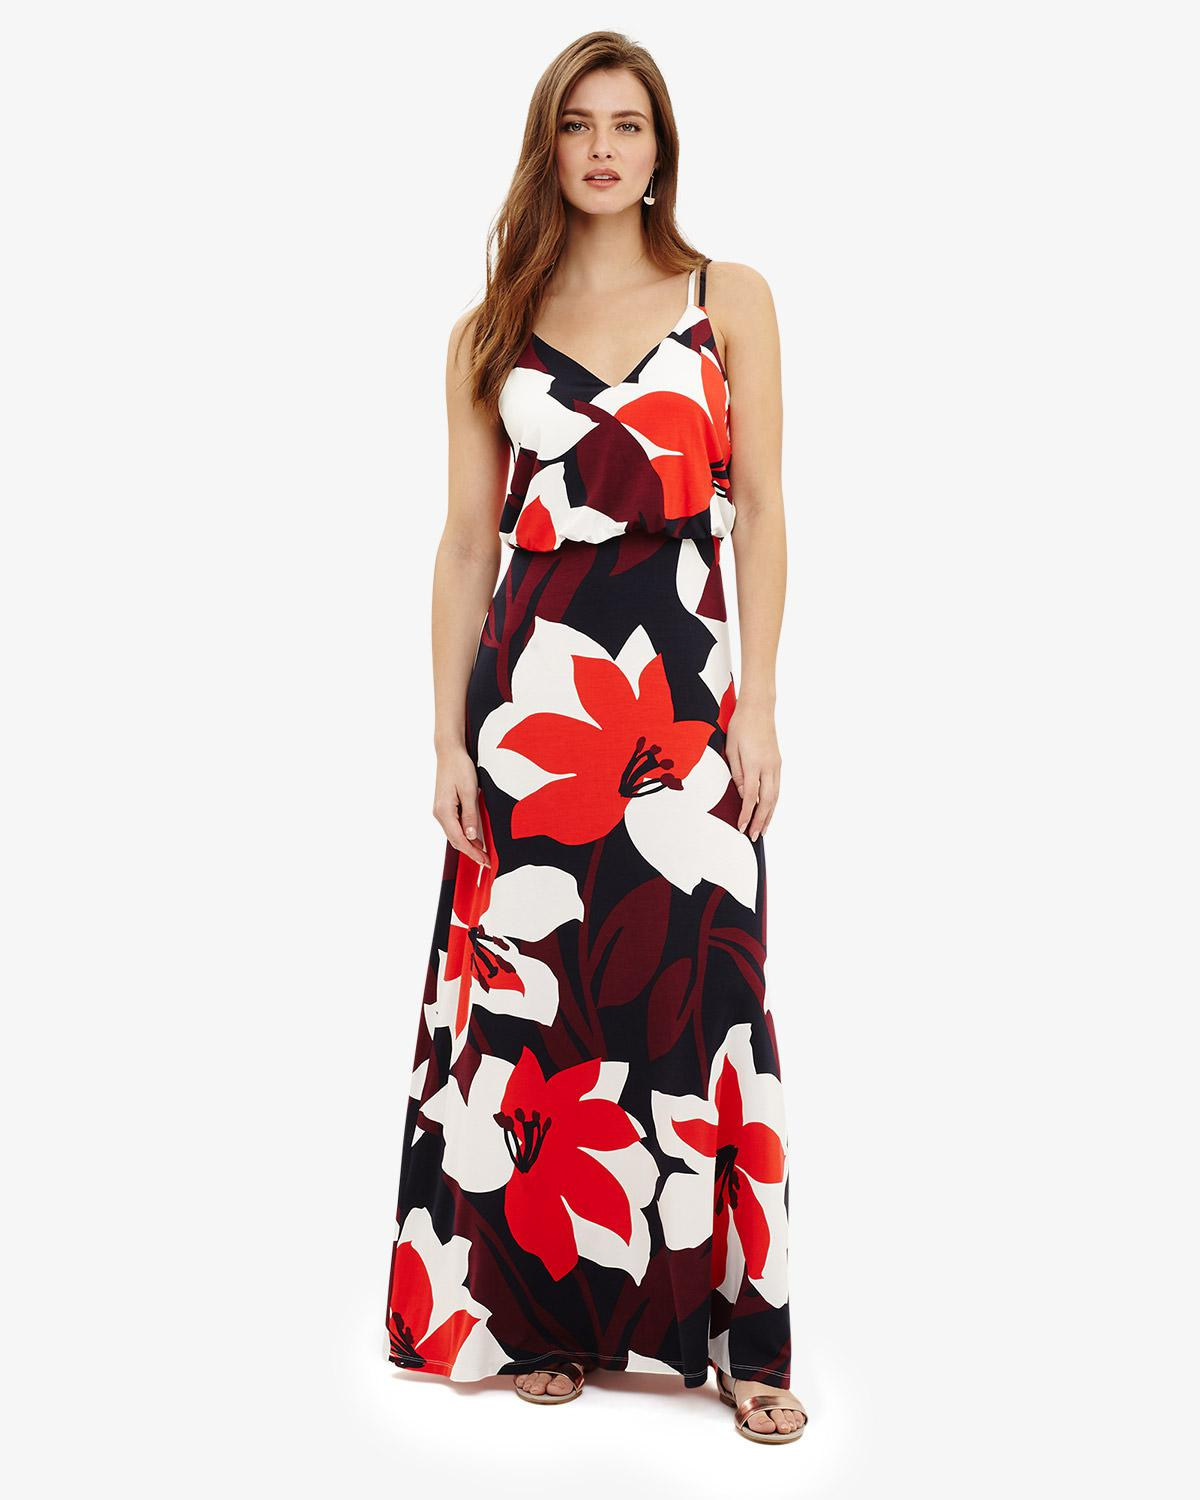 d315d6dc8a0 Phase Eight Lana Floral Print Maxi Dress in Red - Lyst